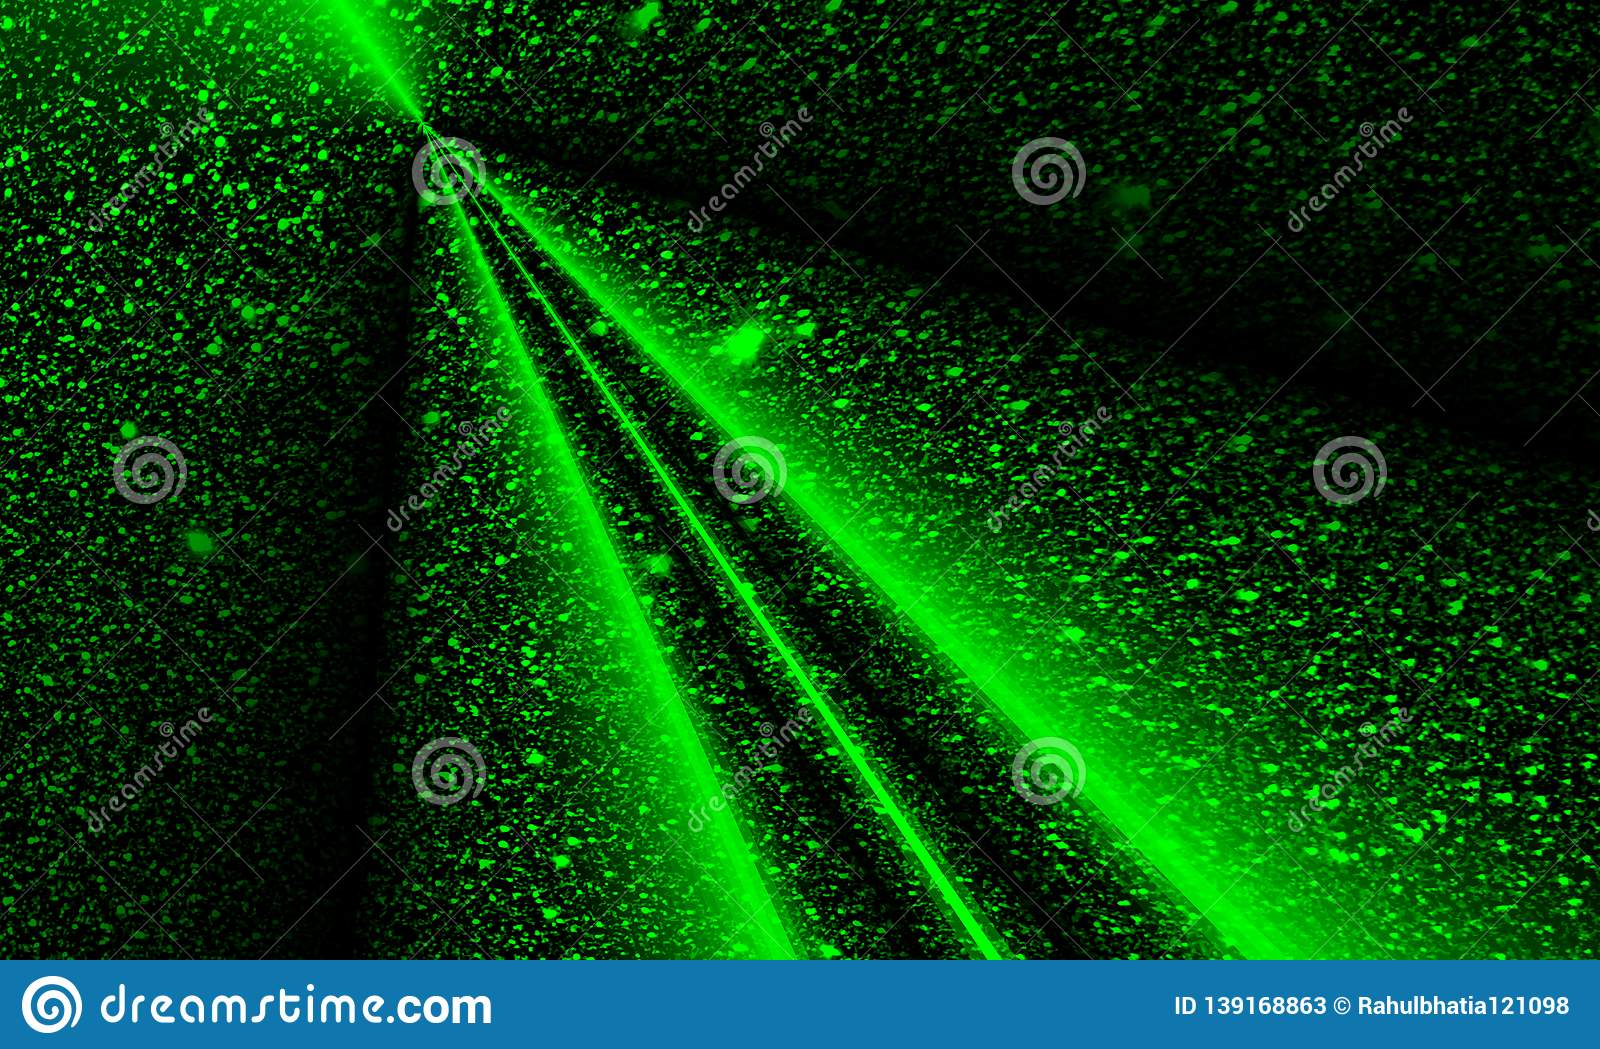 Glitter Textured Dark Greenbackground Wallpaper Stock